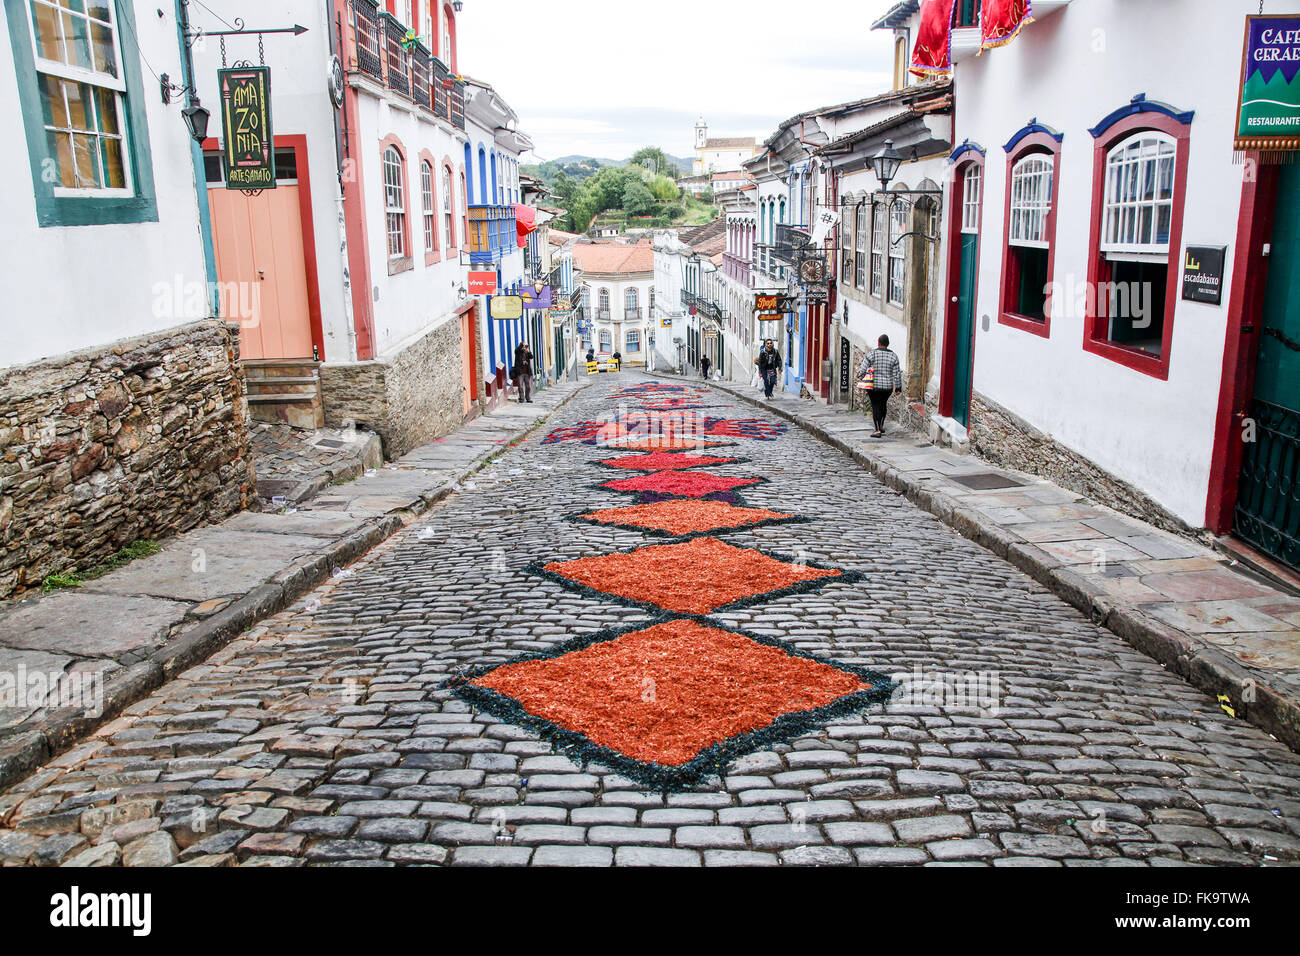 Street decorated with carpets of colored sawdust for the procession of Corpus Christi - Stock Image